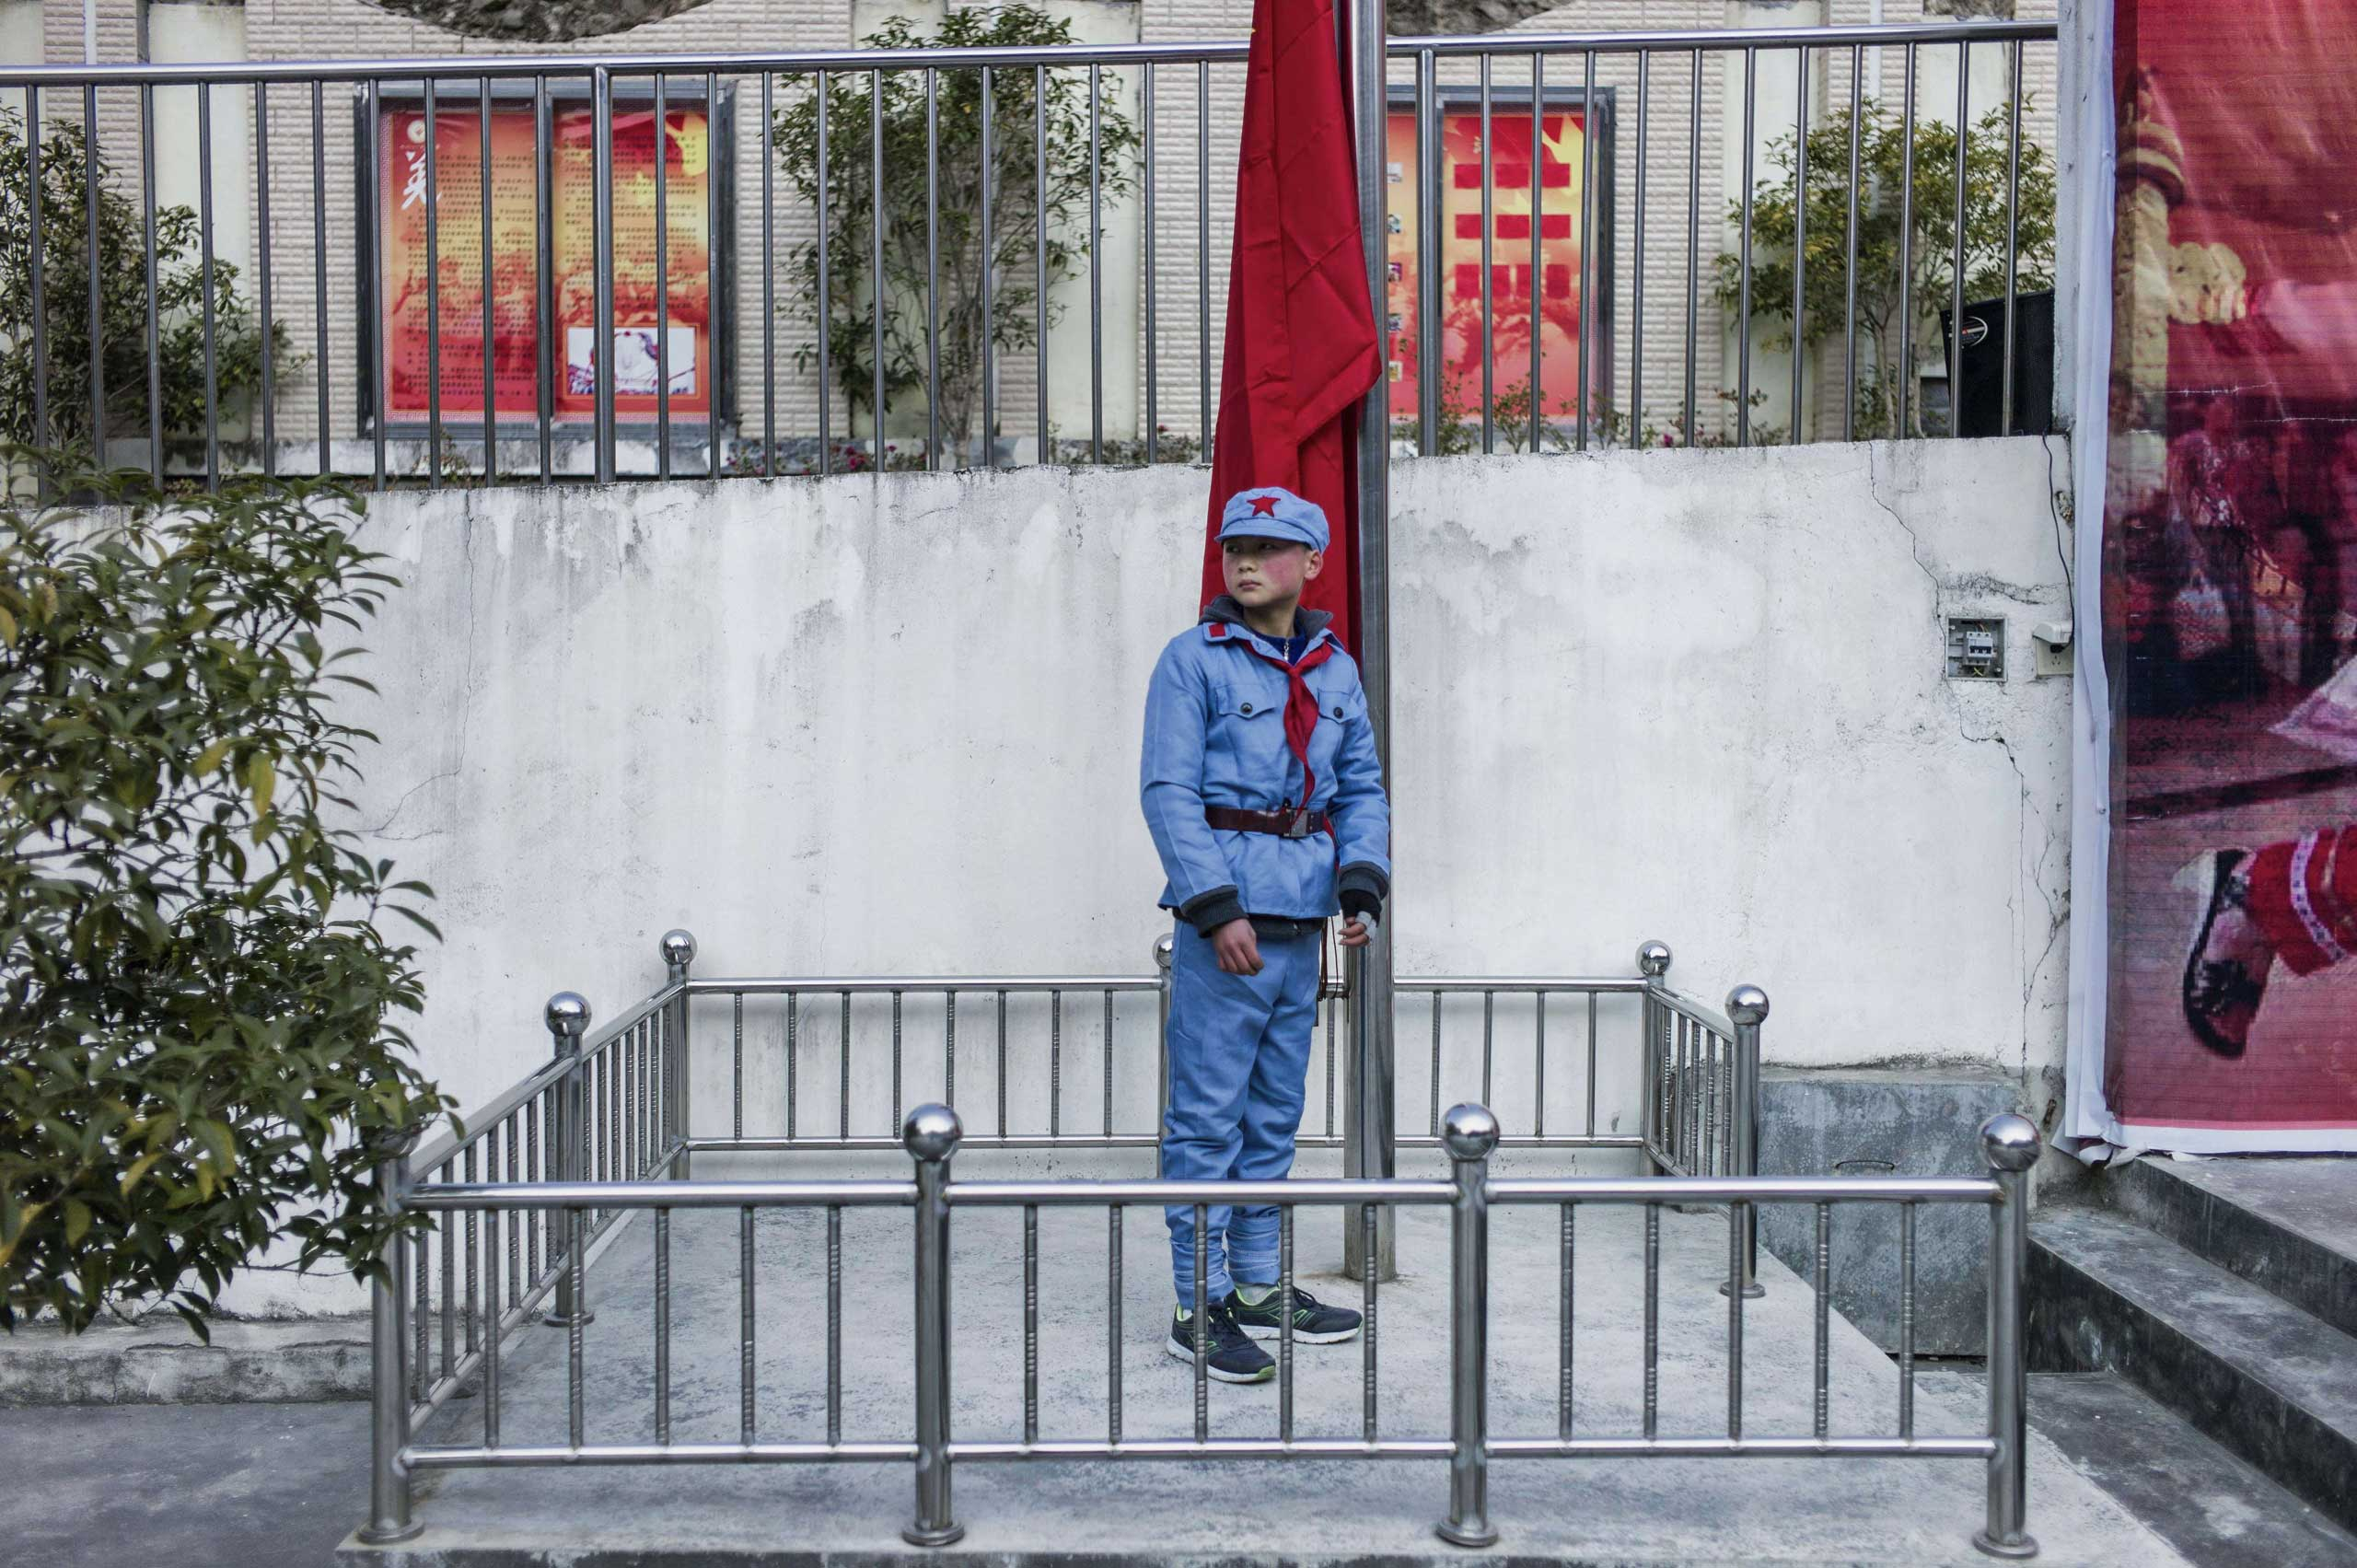 A child wearing a uniform waits to raise the national flag on Jan. 21, 2015 at the Beichuan Red army elementary school in Beichuan, southwest China's Sichuan province.